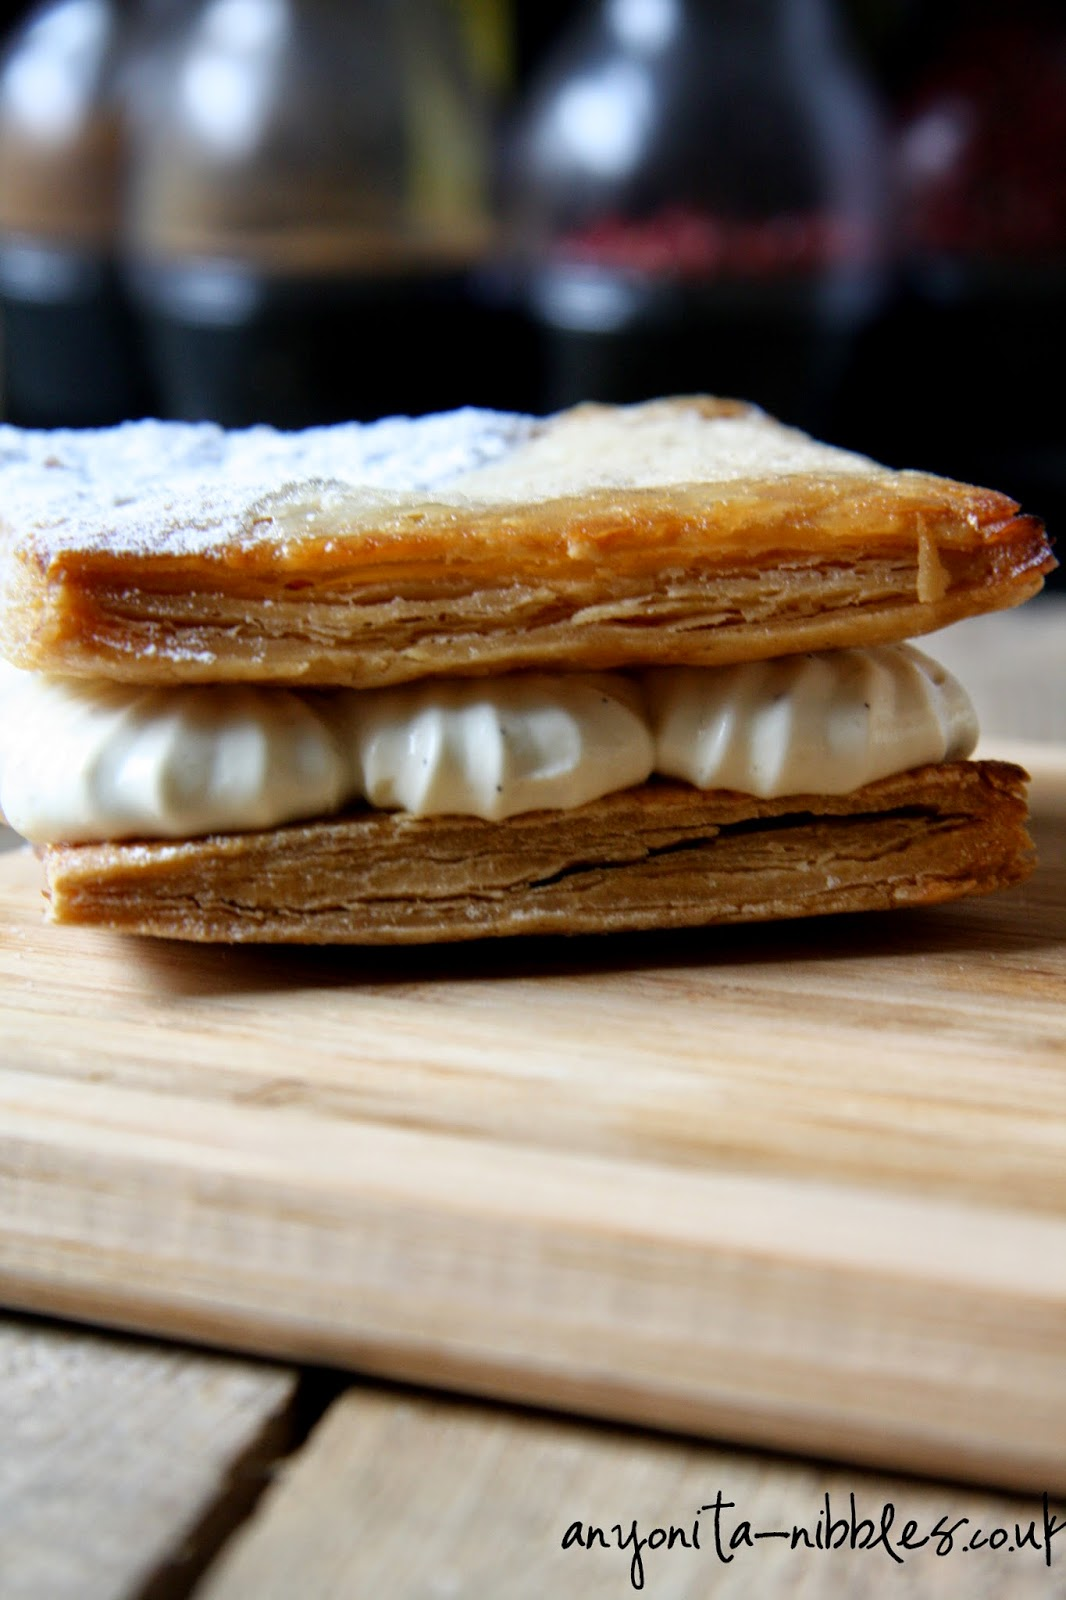 Filling andx layers to a mille feuille from Anyonita-nibbles.co.uk